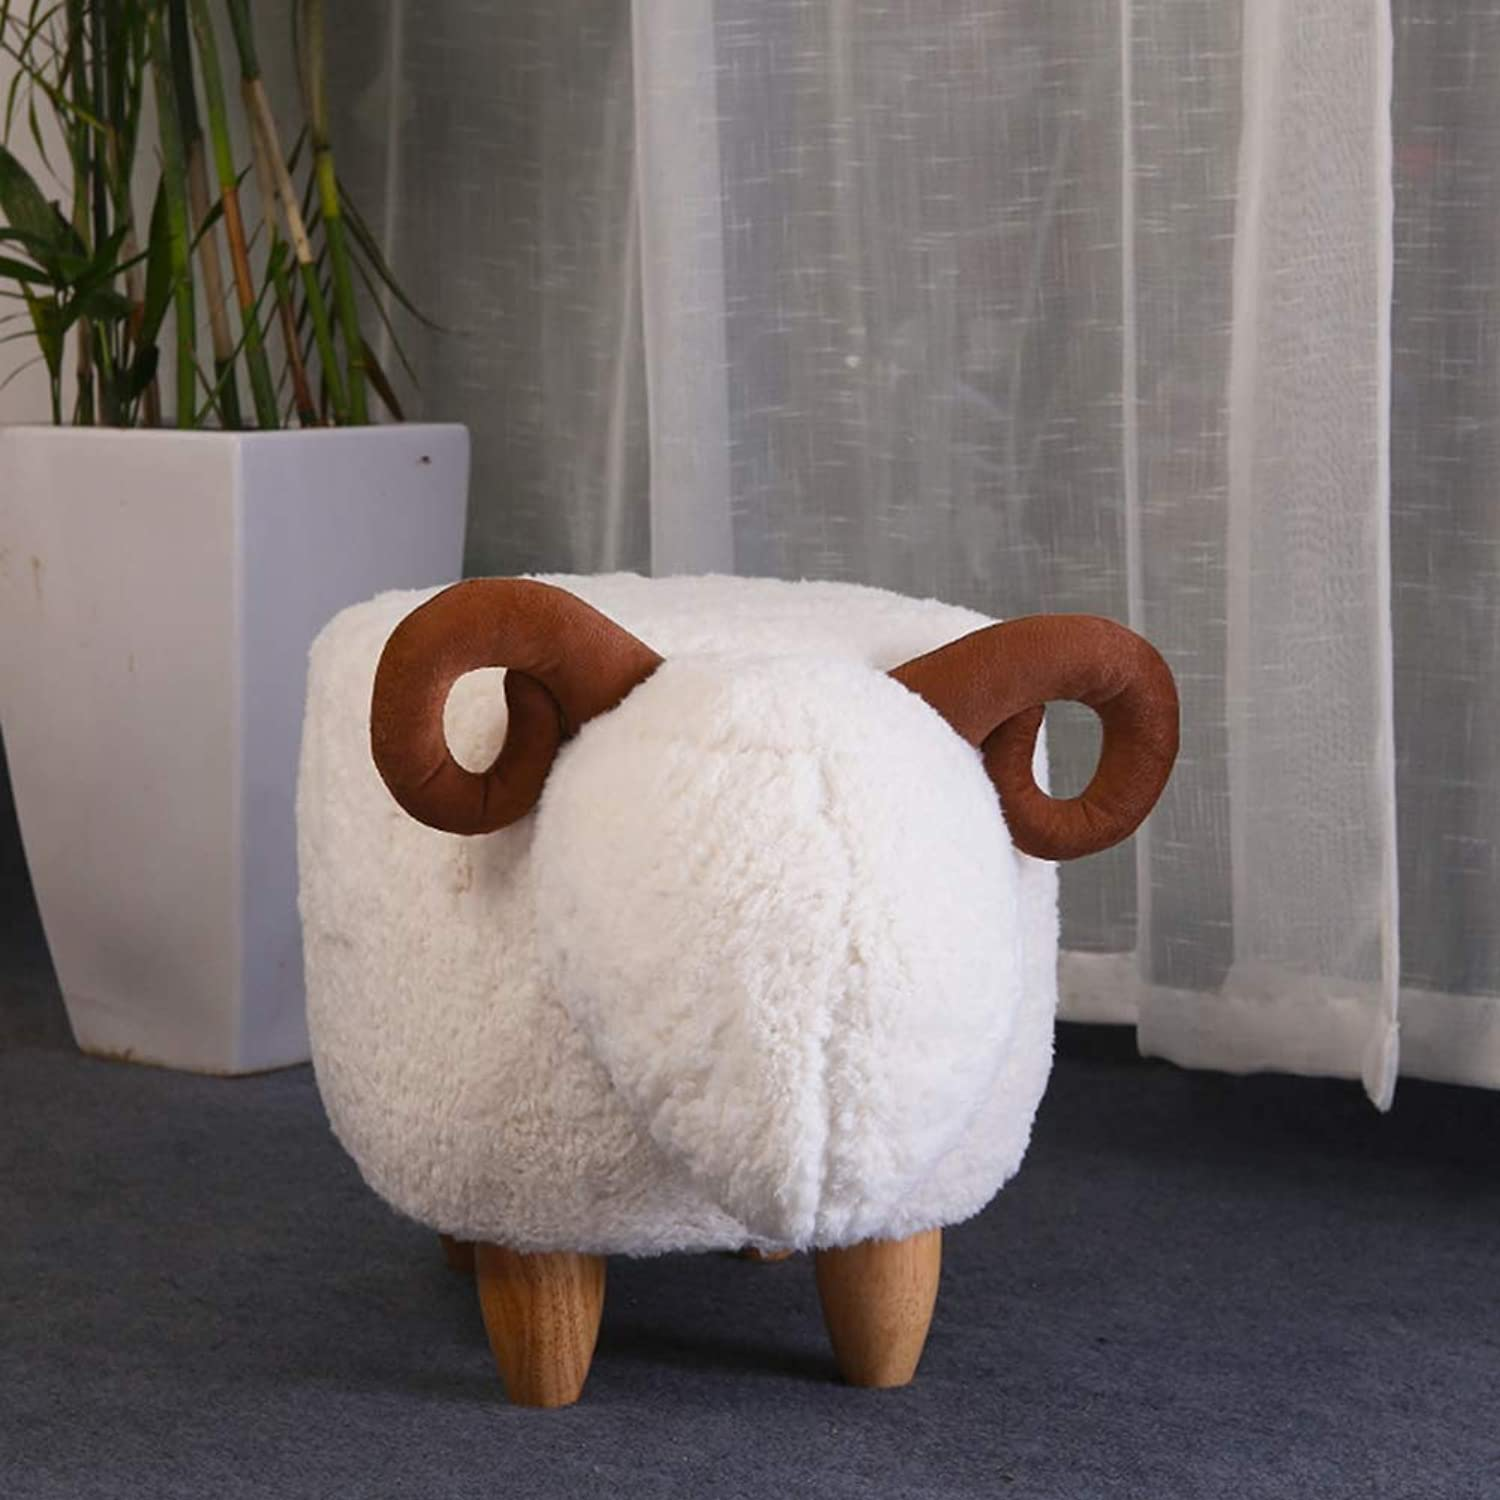 TENCMG Footstool Stool Storage, Changing shoes, Solid Wood, Creative, Sheep Modeling Decorative Furniture,Bwhite,63x33x36cm